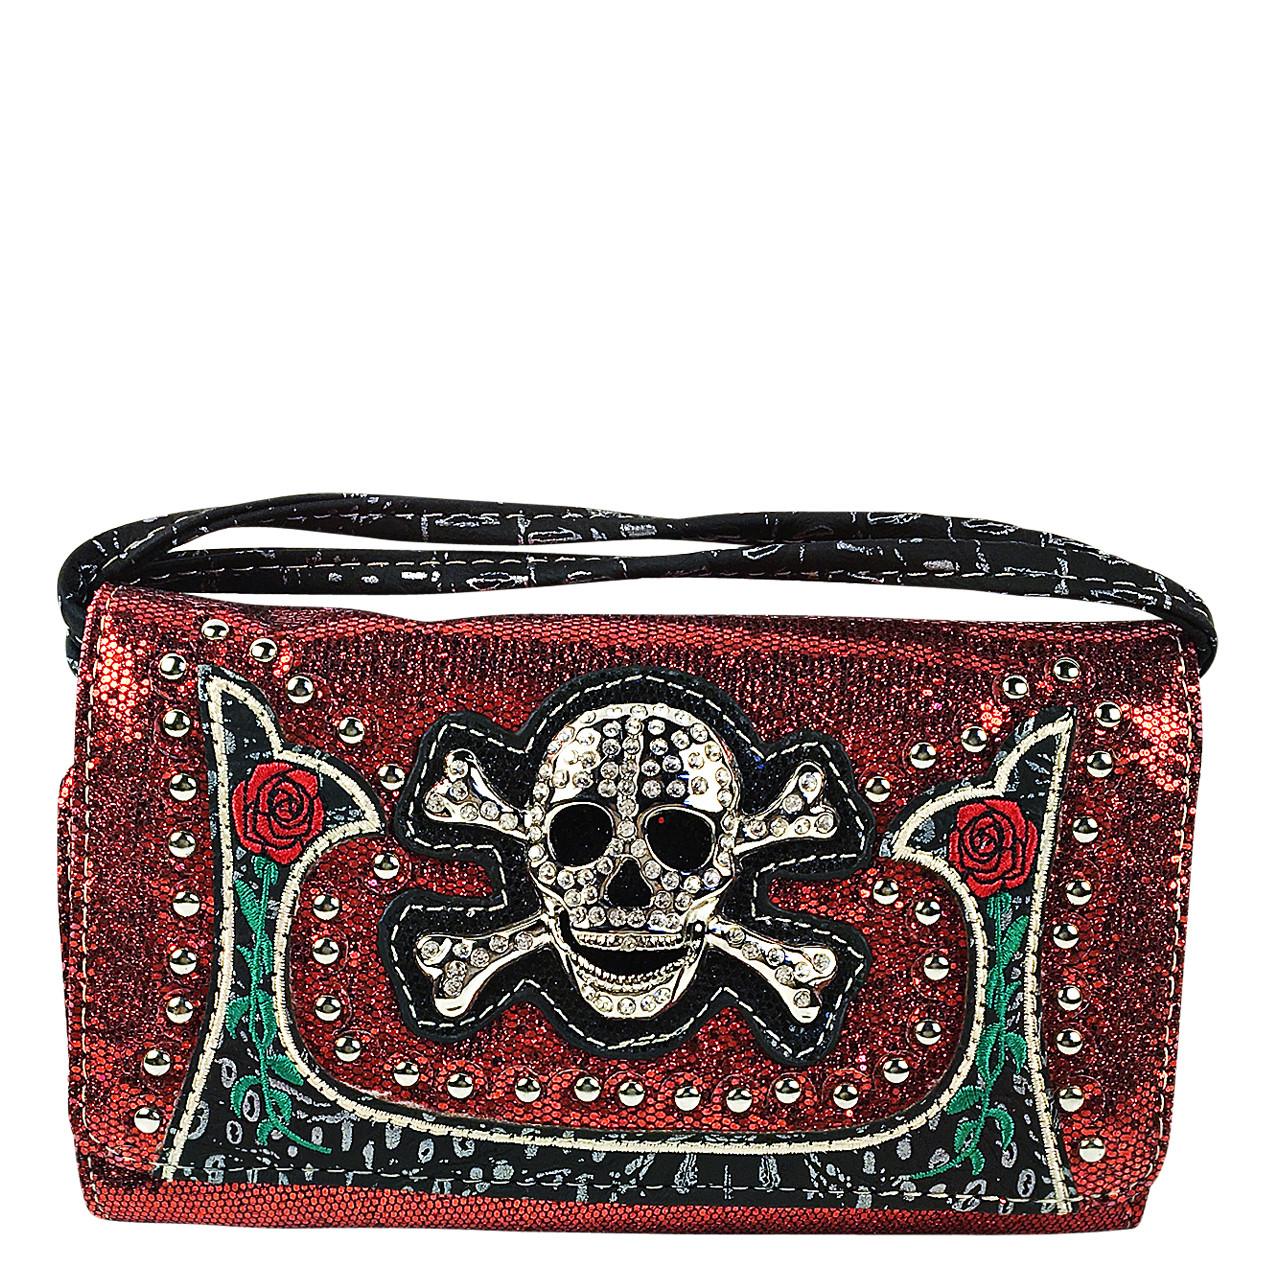 RED GLITTER SKULL LOOK CLUTCH TRIFOLD WALLET